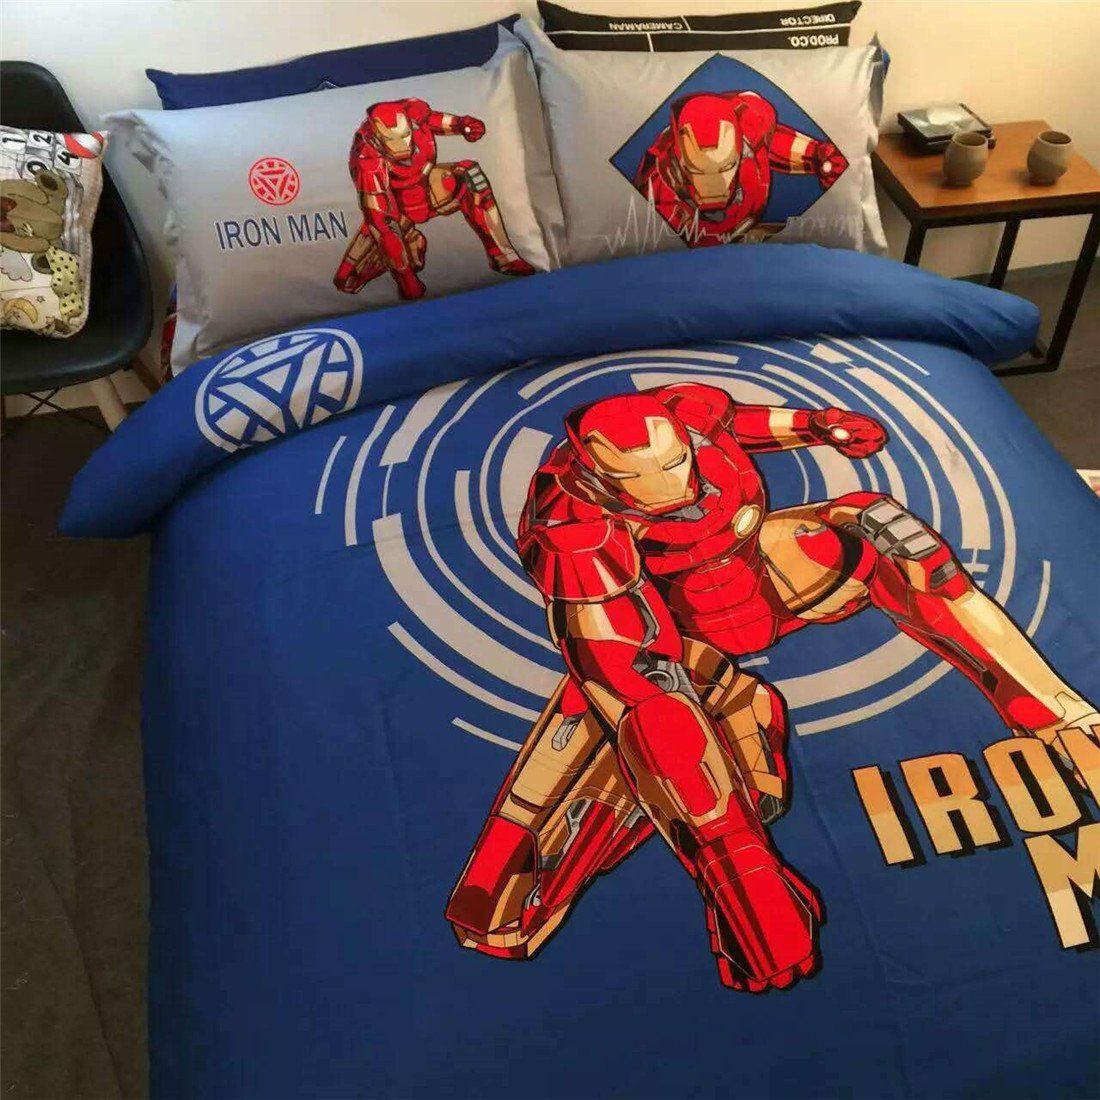 Iron Man Pillowcases